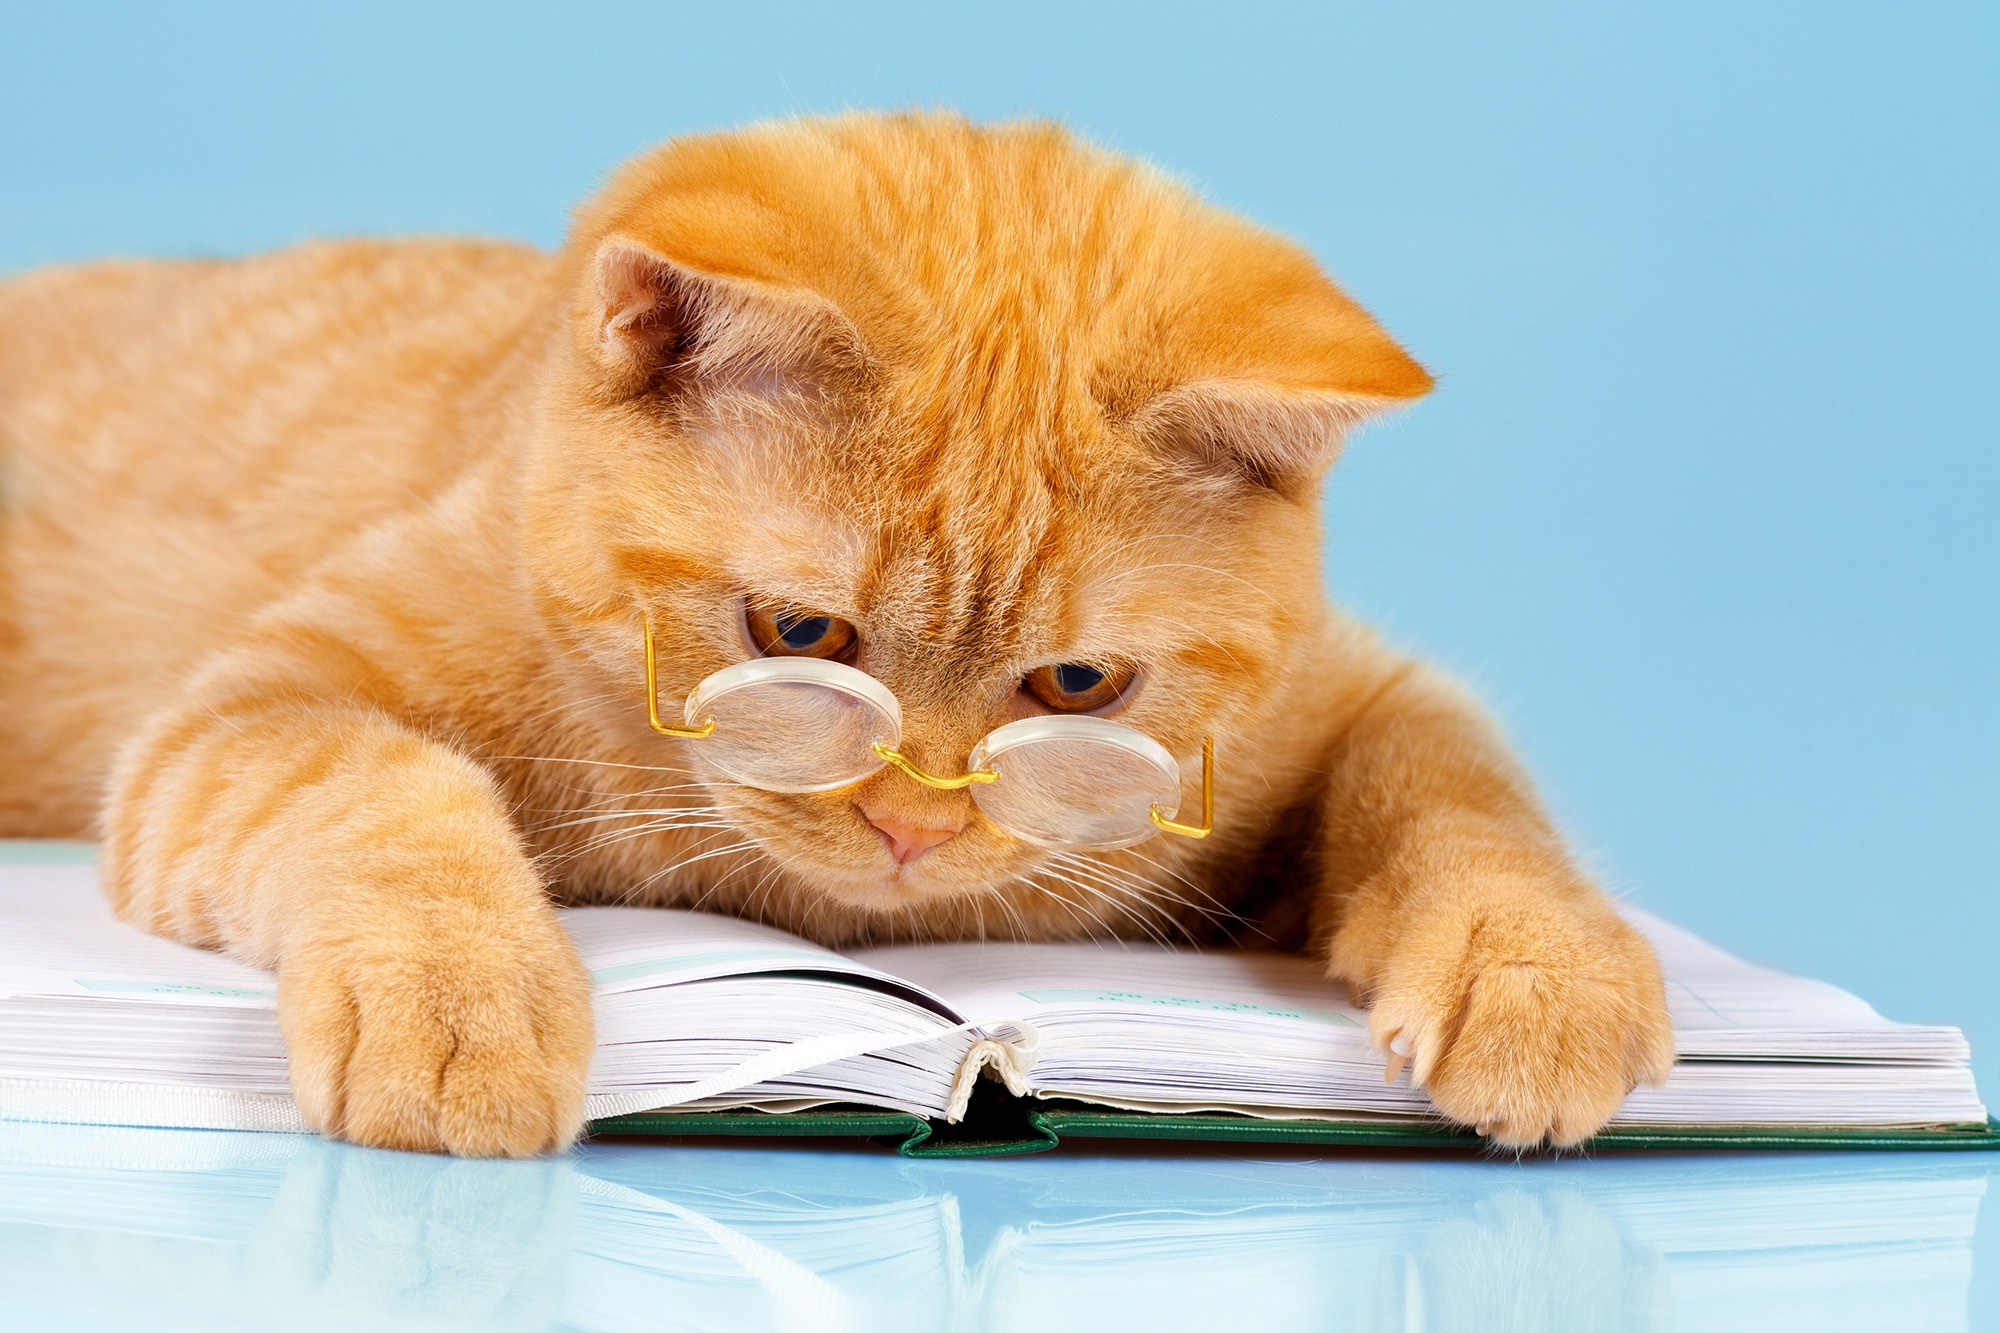 Descriptive image: a cat wearing glasses and looking at a book